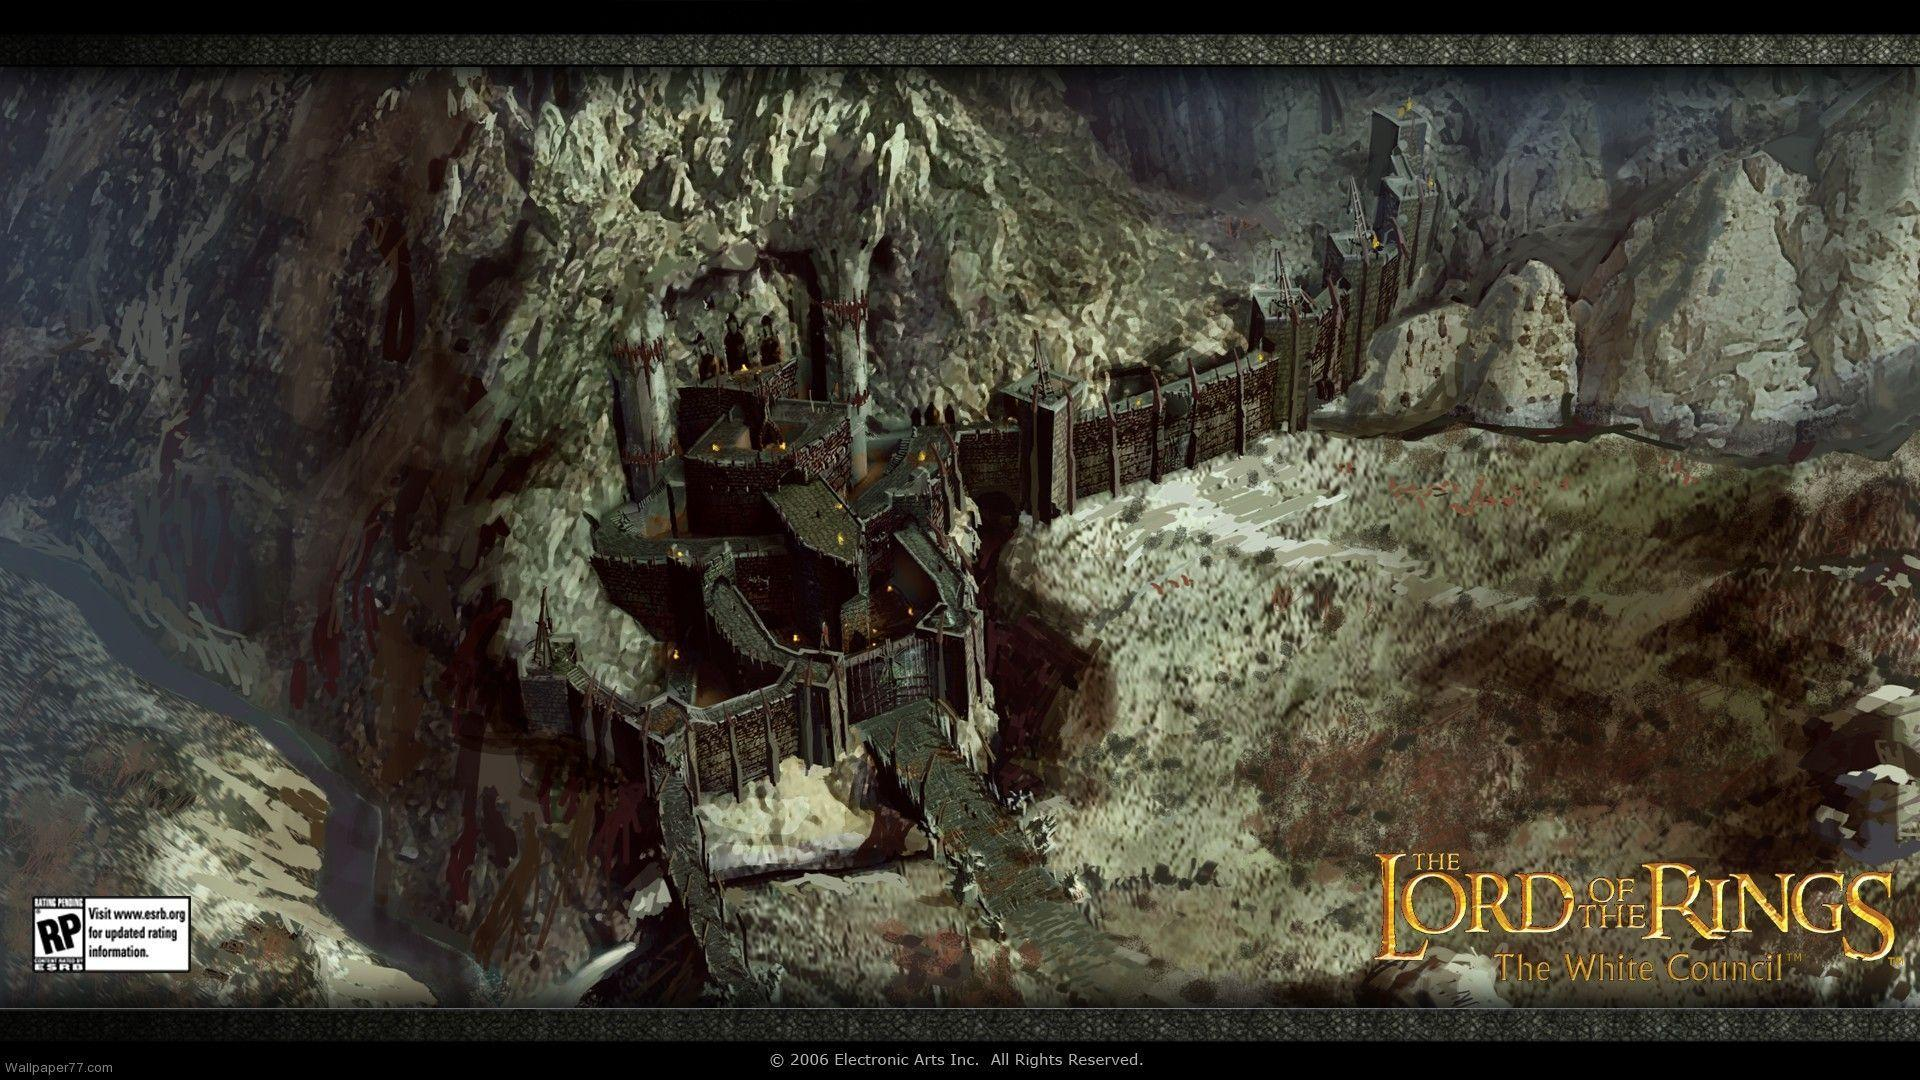 Lord Of The Rings wallpapers